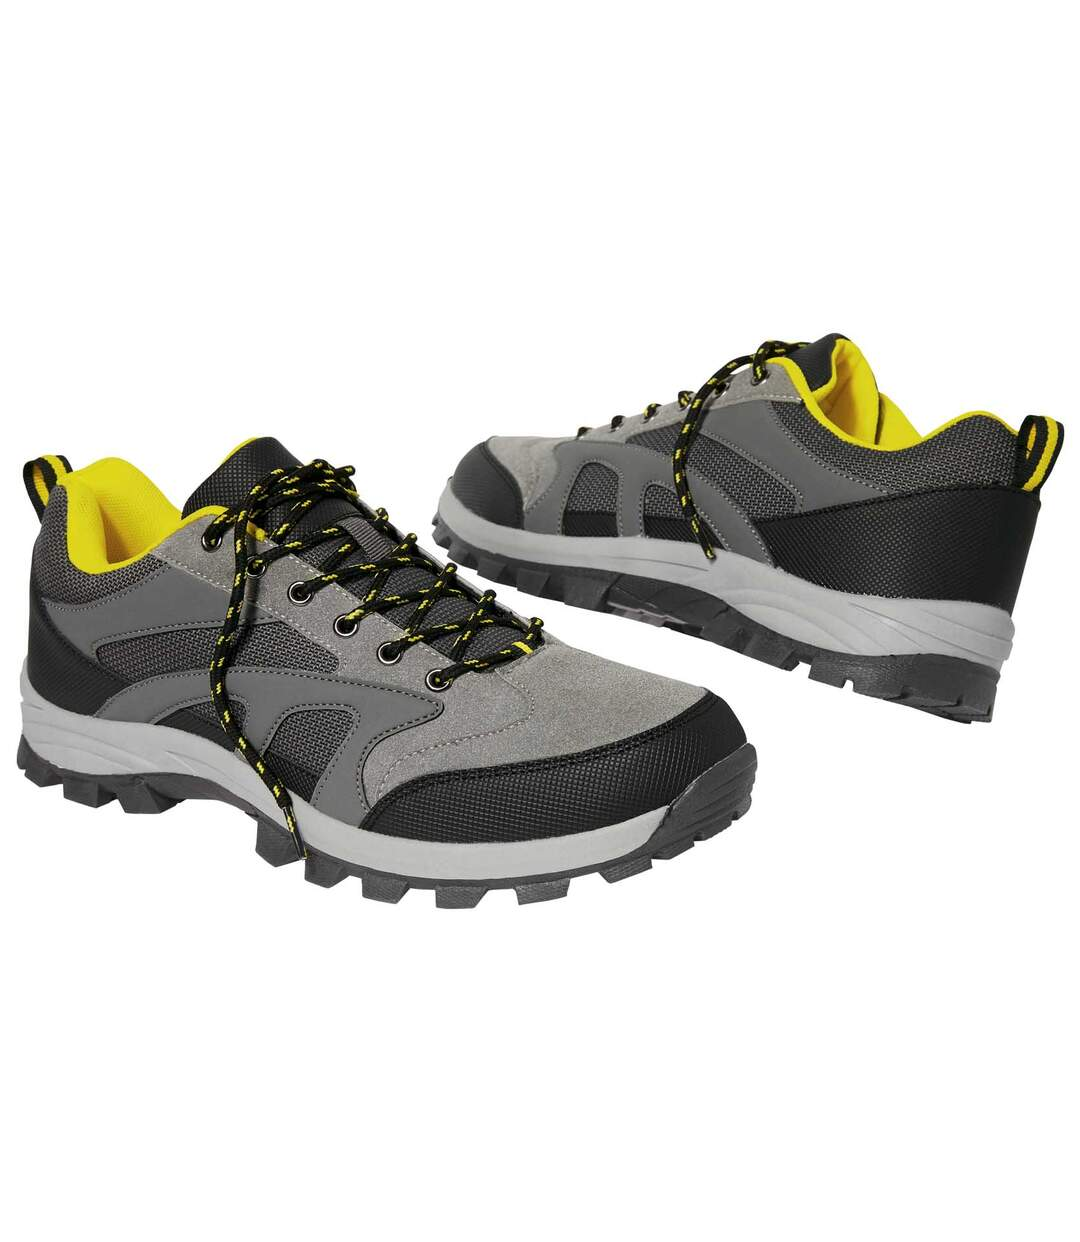 Men's Casual Sports Shoes - Grey